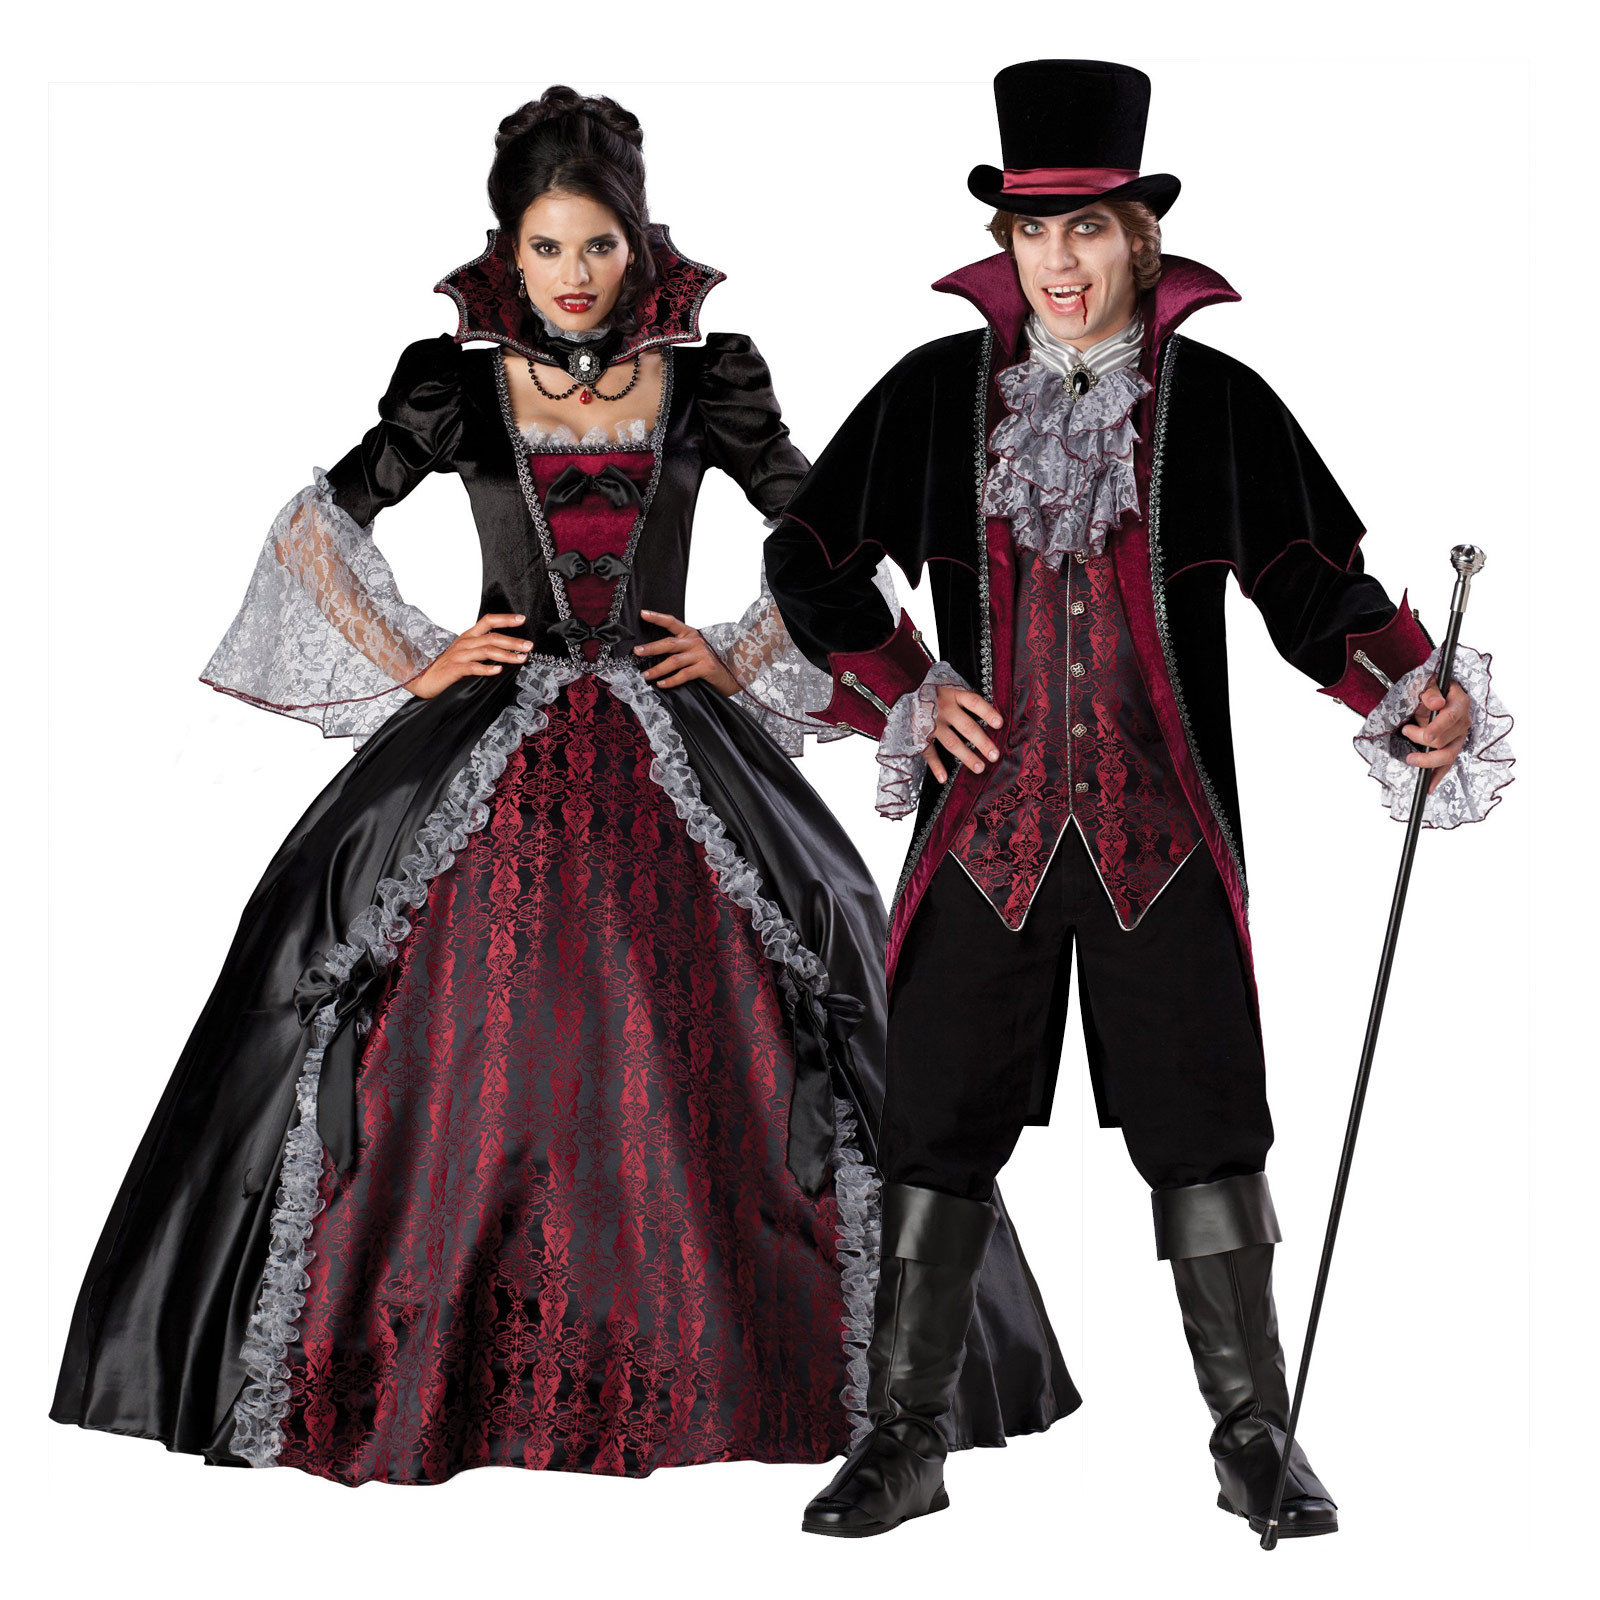 Best ideas about DIY Costumes For Couples . Save or Pin 35 Couples Halloween Costumes Ideas InspirationSeek Now.